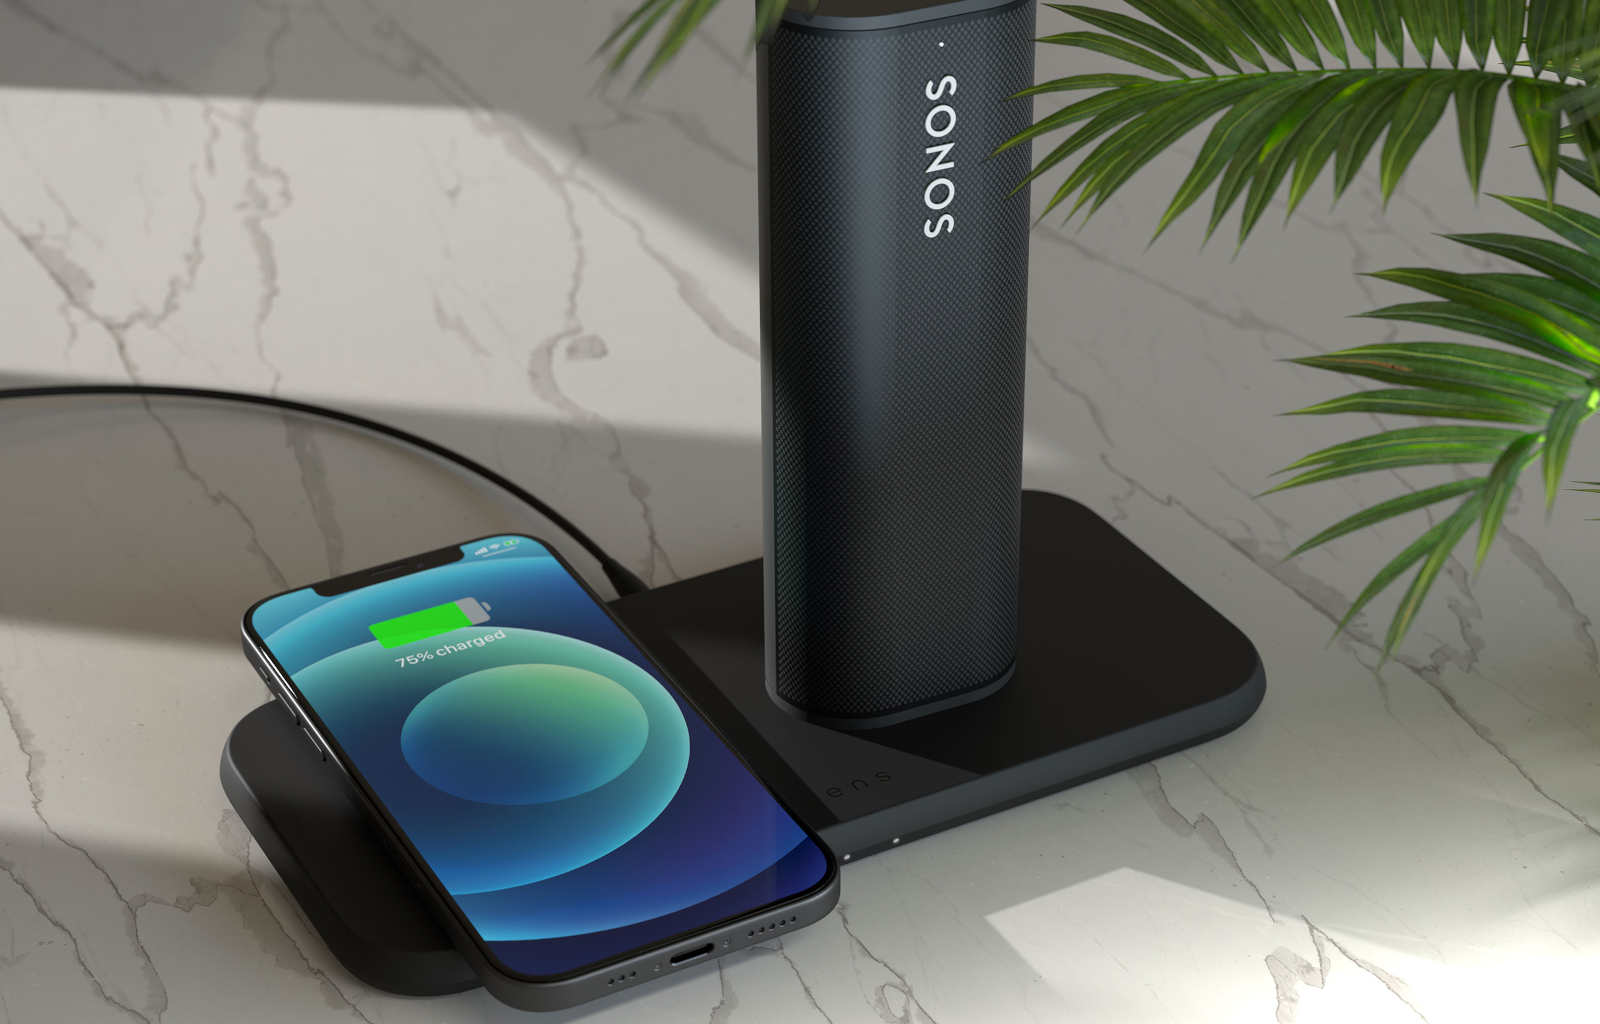 Essential dual wireless charger with iPhone and Sonos